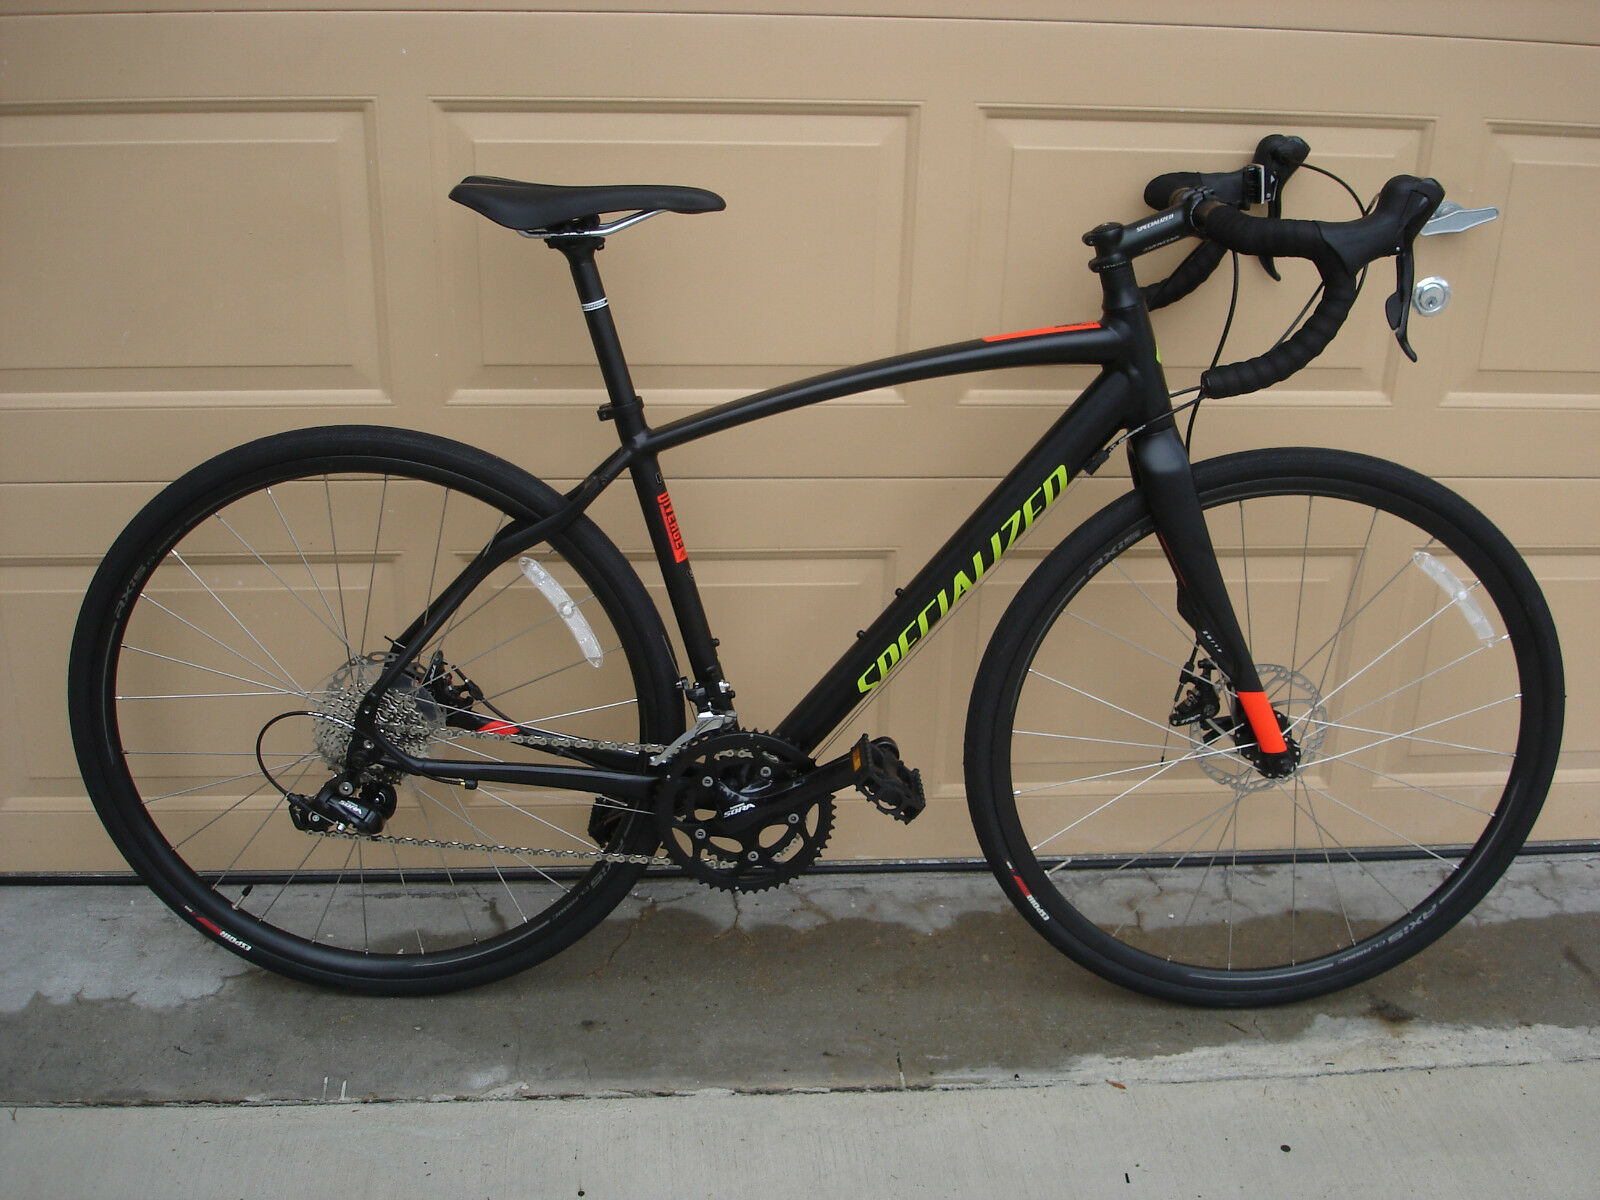 Изображение товара NEW 2016 Specialized Diverge SPORT Bicycle Size 54 (Medium) Retail $1,250